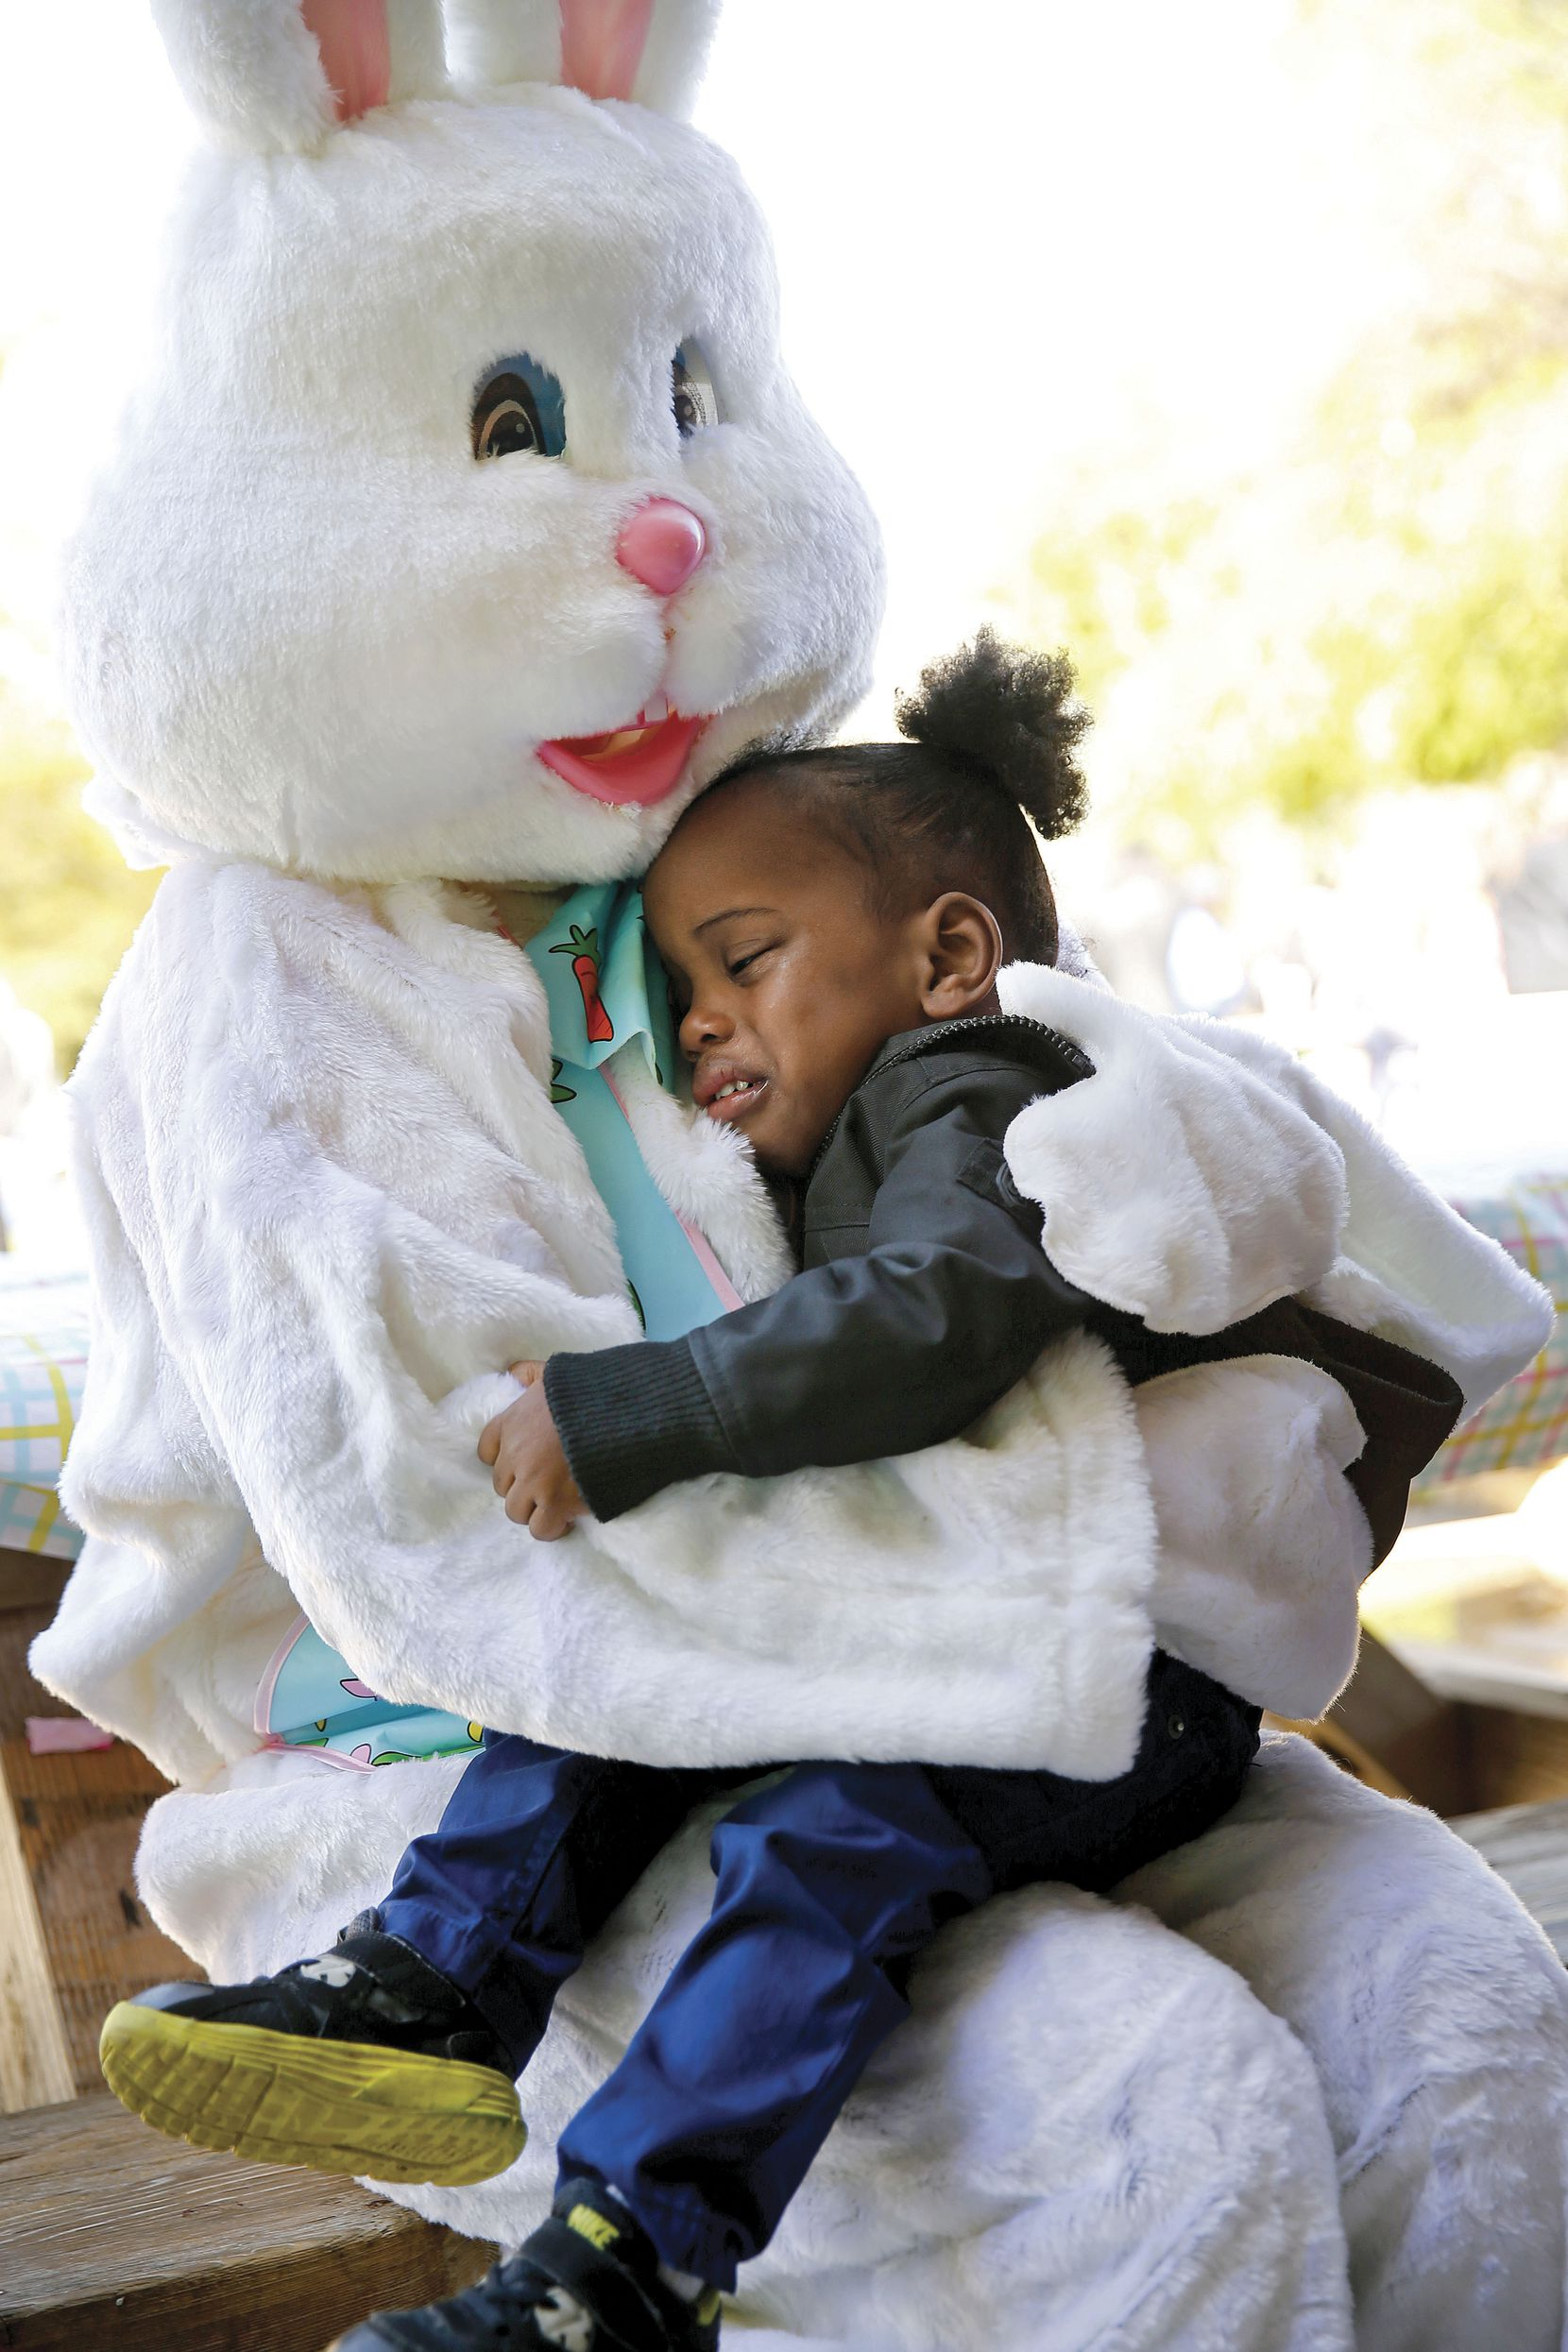 The Easter Bunny comforted Zayne Douglas, 3, of Dallas, a visually impaired boy who was upset by party noise, at White Rock Lake on March 24. The Dallas Independent School District held their annual Beeping Easter Egg Hunt for visually- and hearing- impaired children of low-income Dallas families.